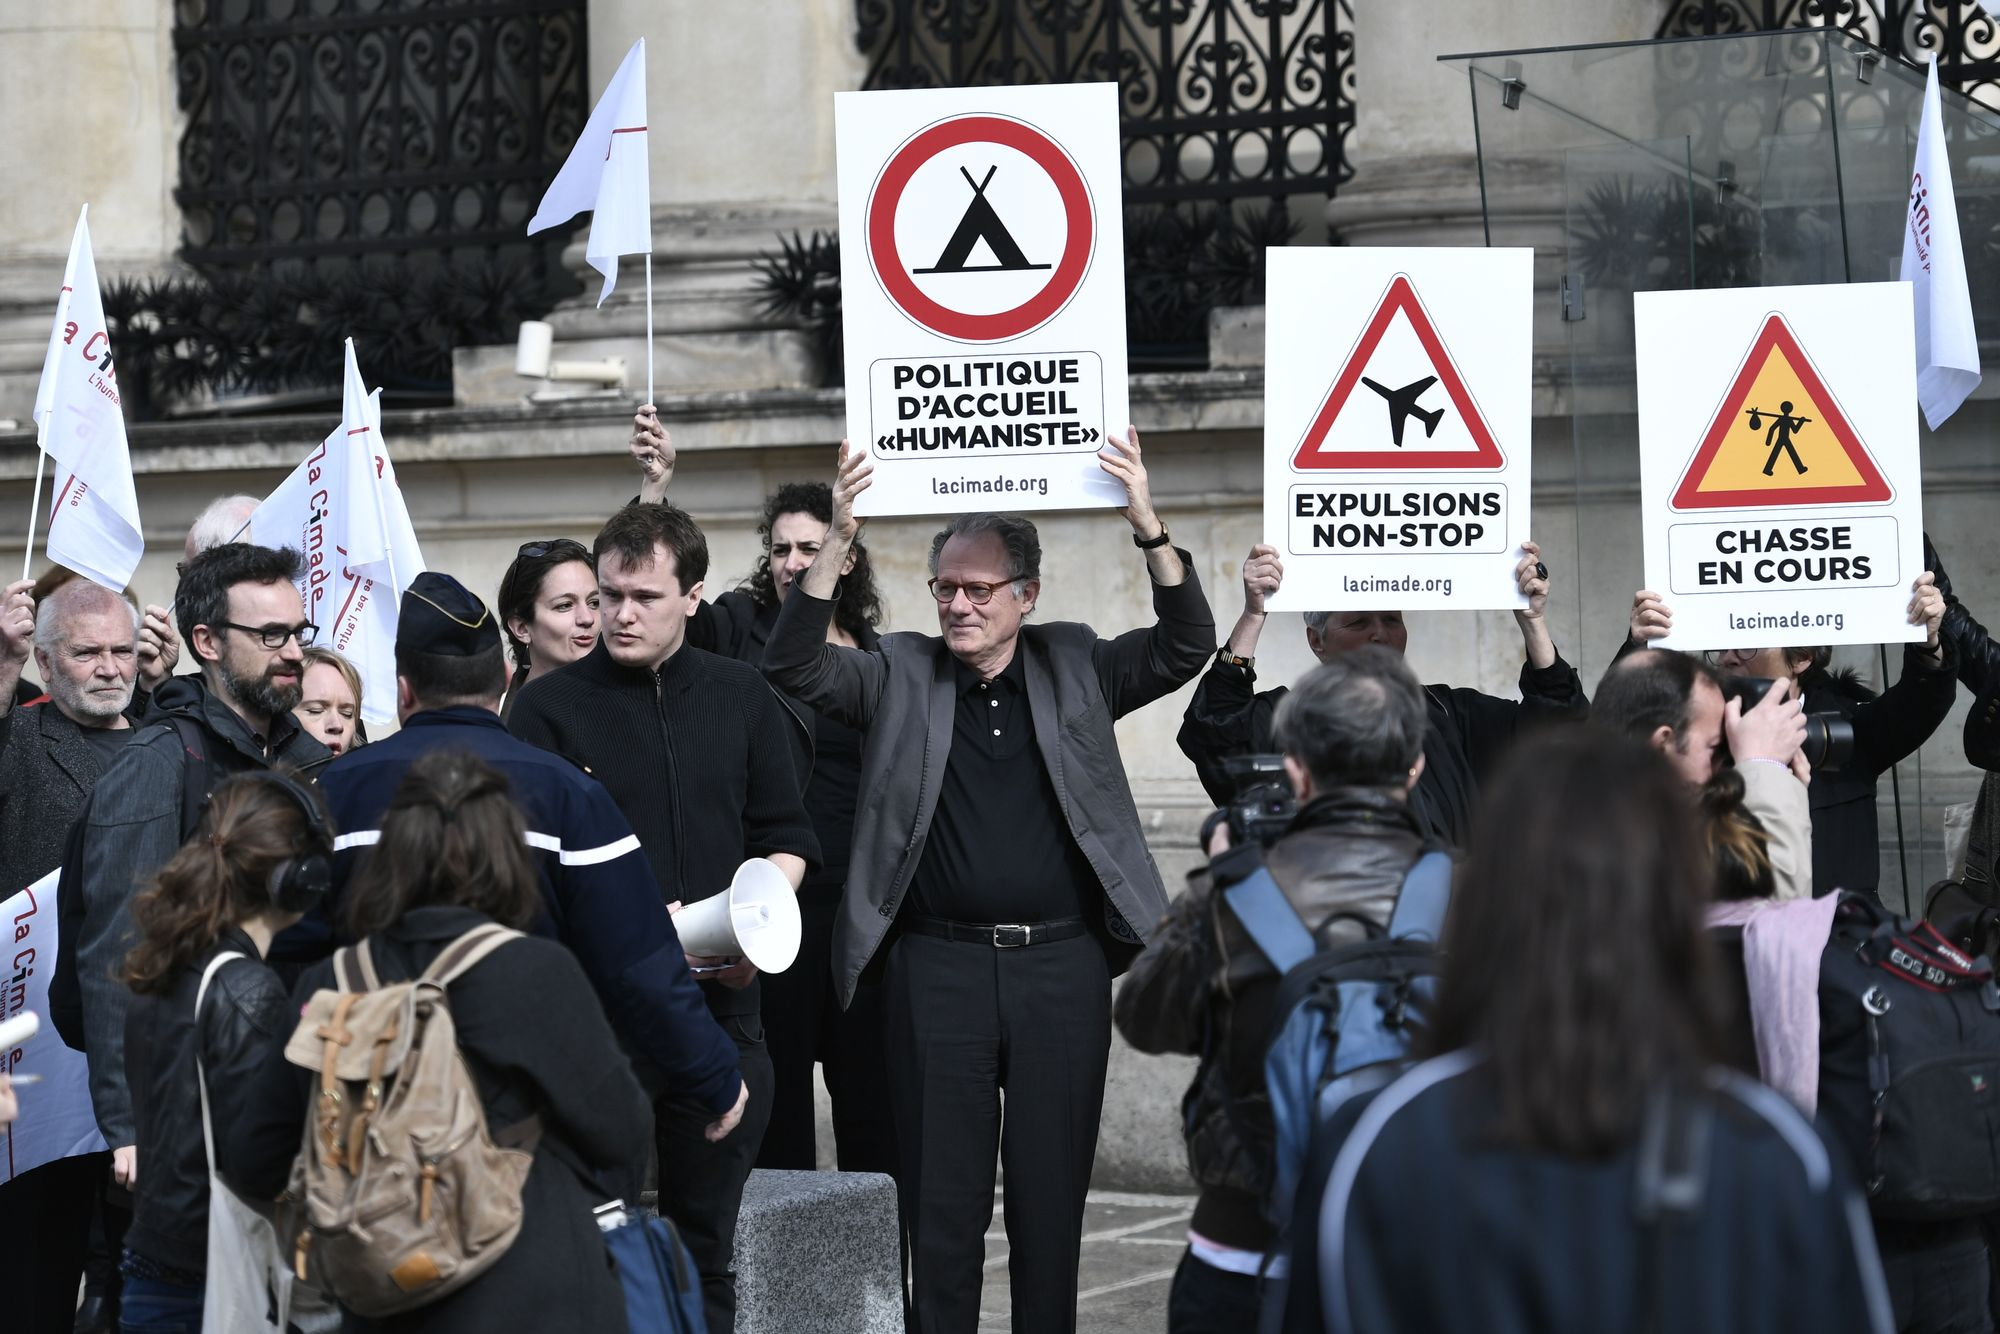 Une manifestation de l'association d'aide aux migrants Cimade, en avril 2018 à Paris.